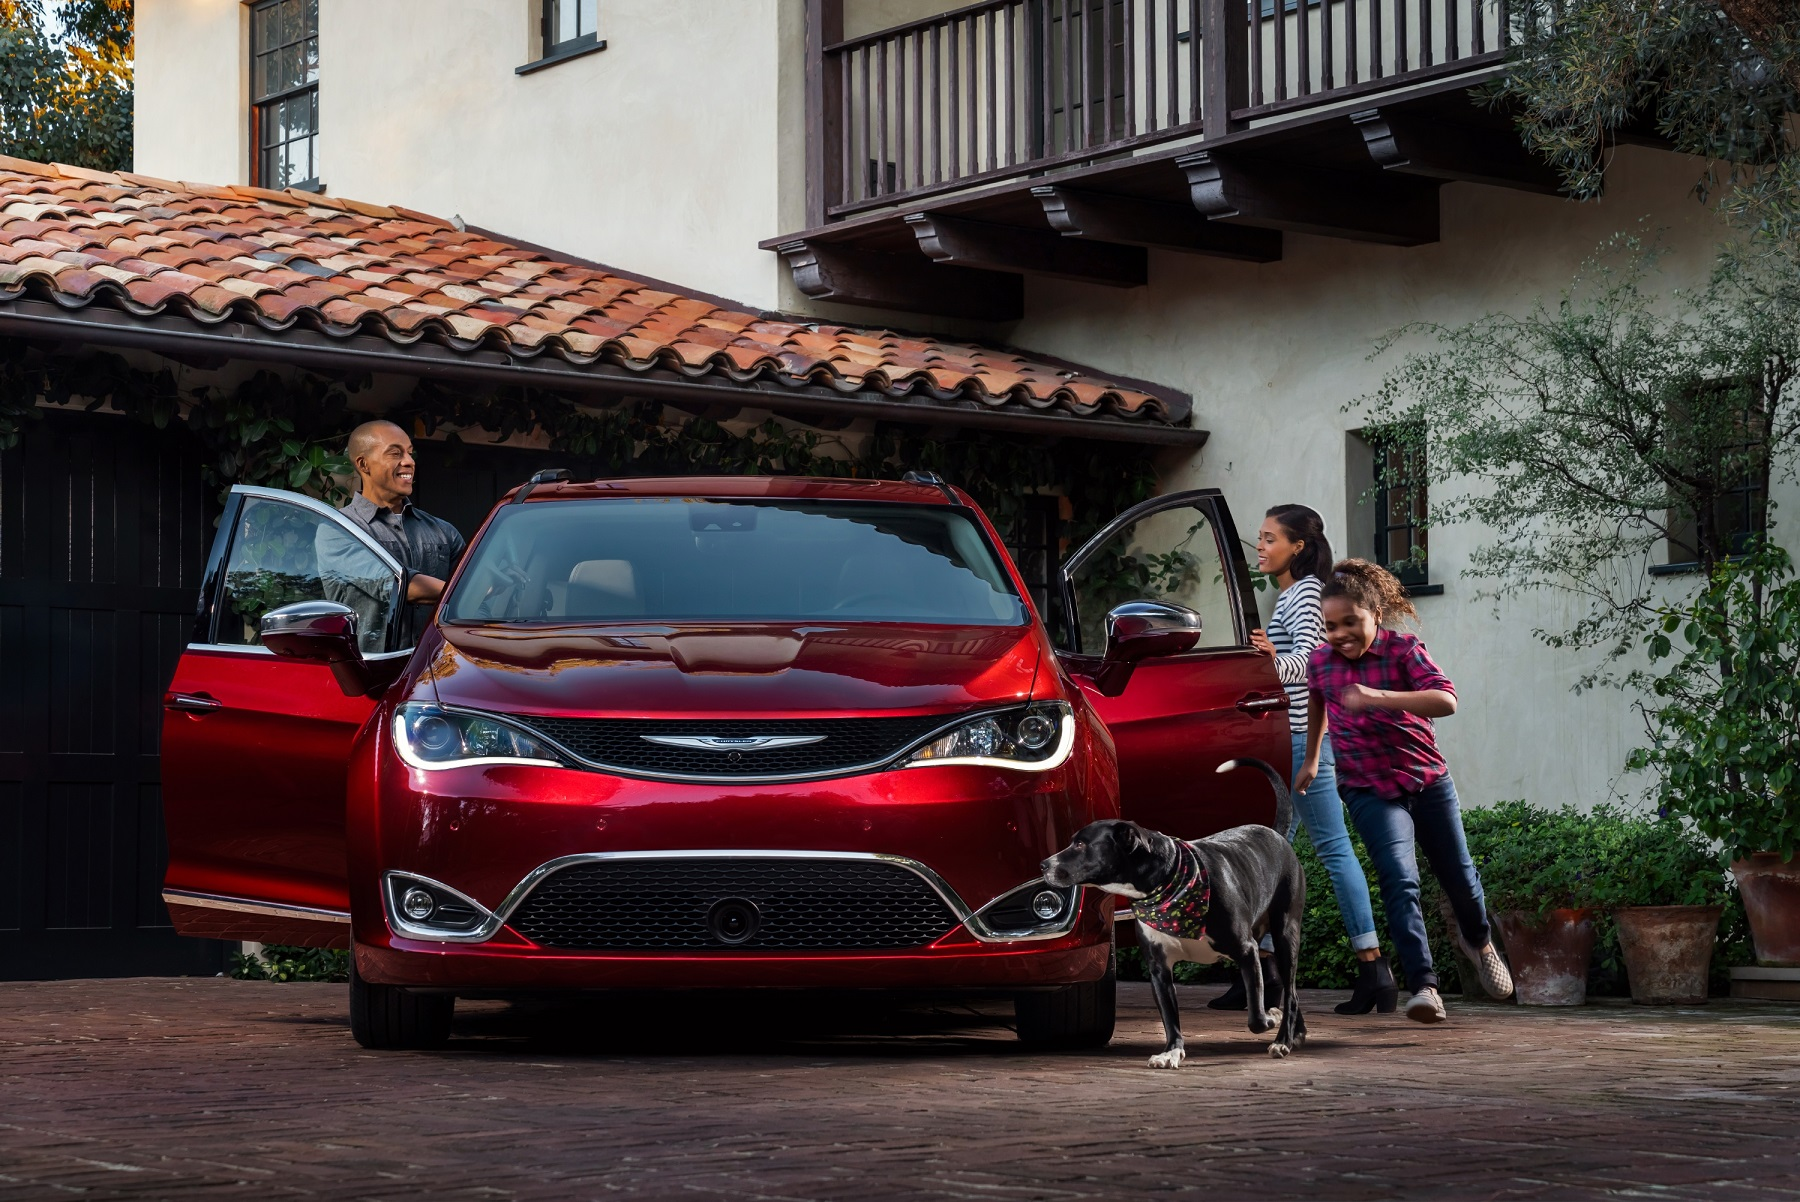 chryslers newest minivan designed with everything parents could wish for including a rear seat entertainment system with an app entitled